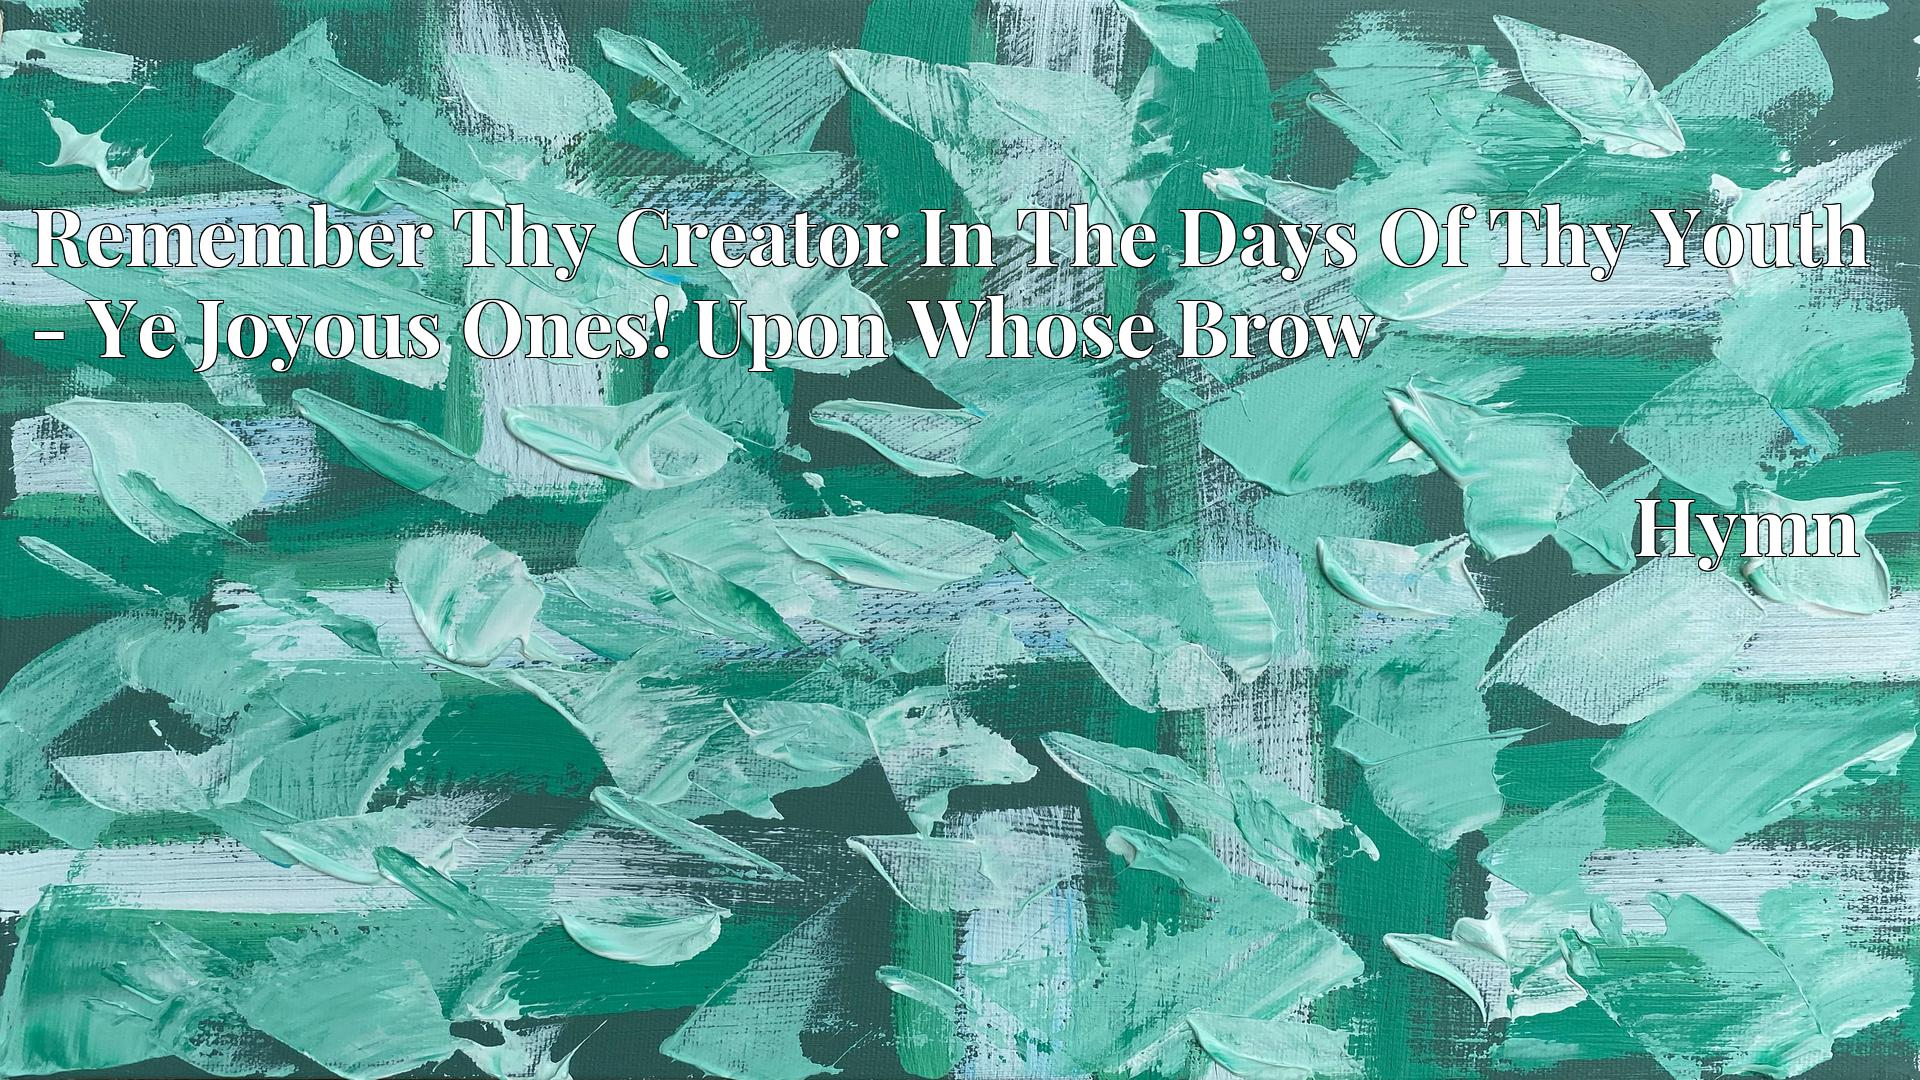 Remember Thy Creator In The Days Of Thy Youth - Ye Joyous Ones! Upon Whose Brow - Hymn